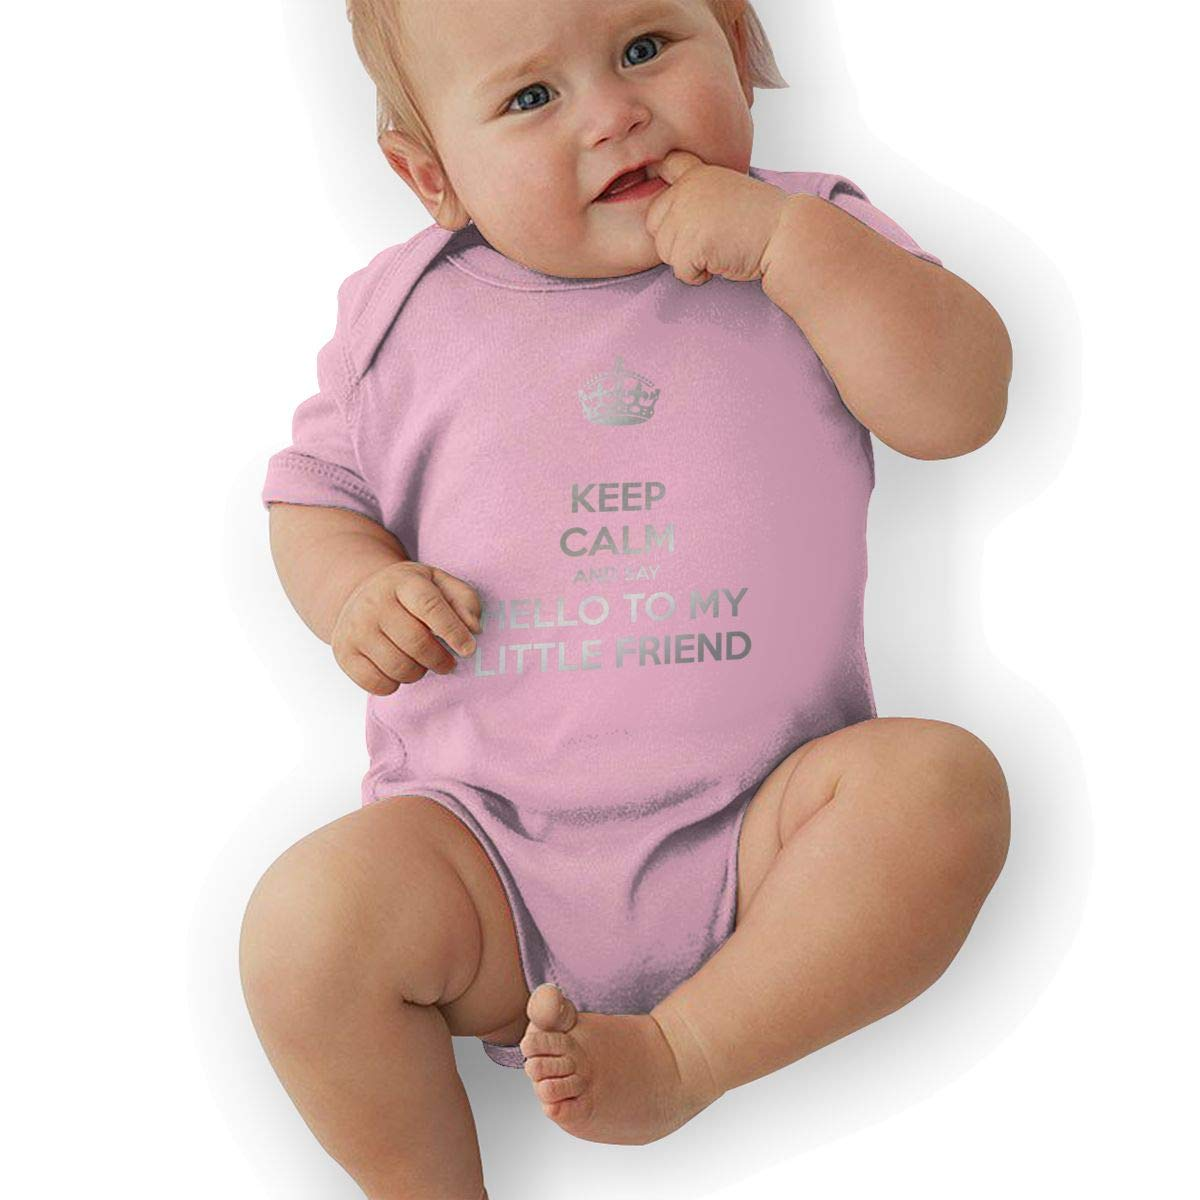 Infant Baby Girls Bodysuit Short-Sleeve Onesie Keep Calm and Say Hello to My Little Friend Print Rompers Winter Pajamas